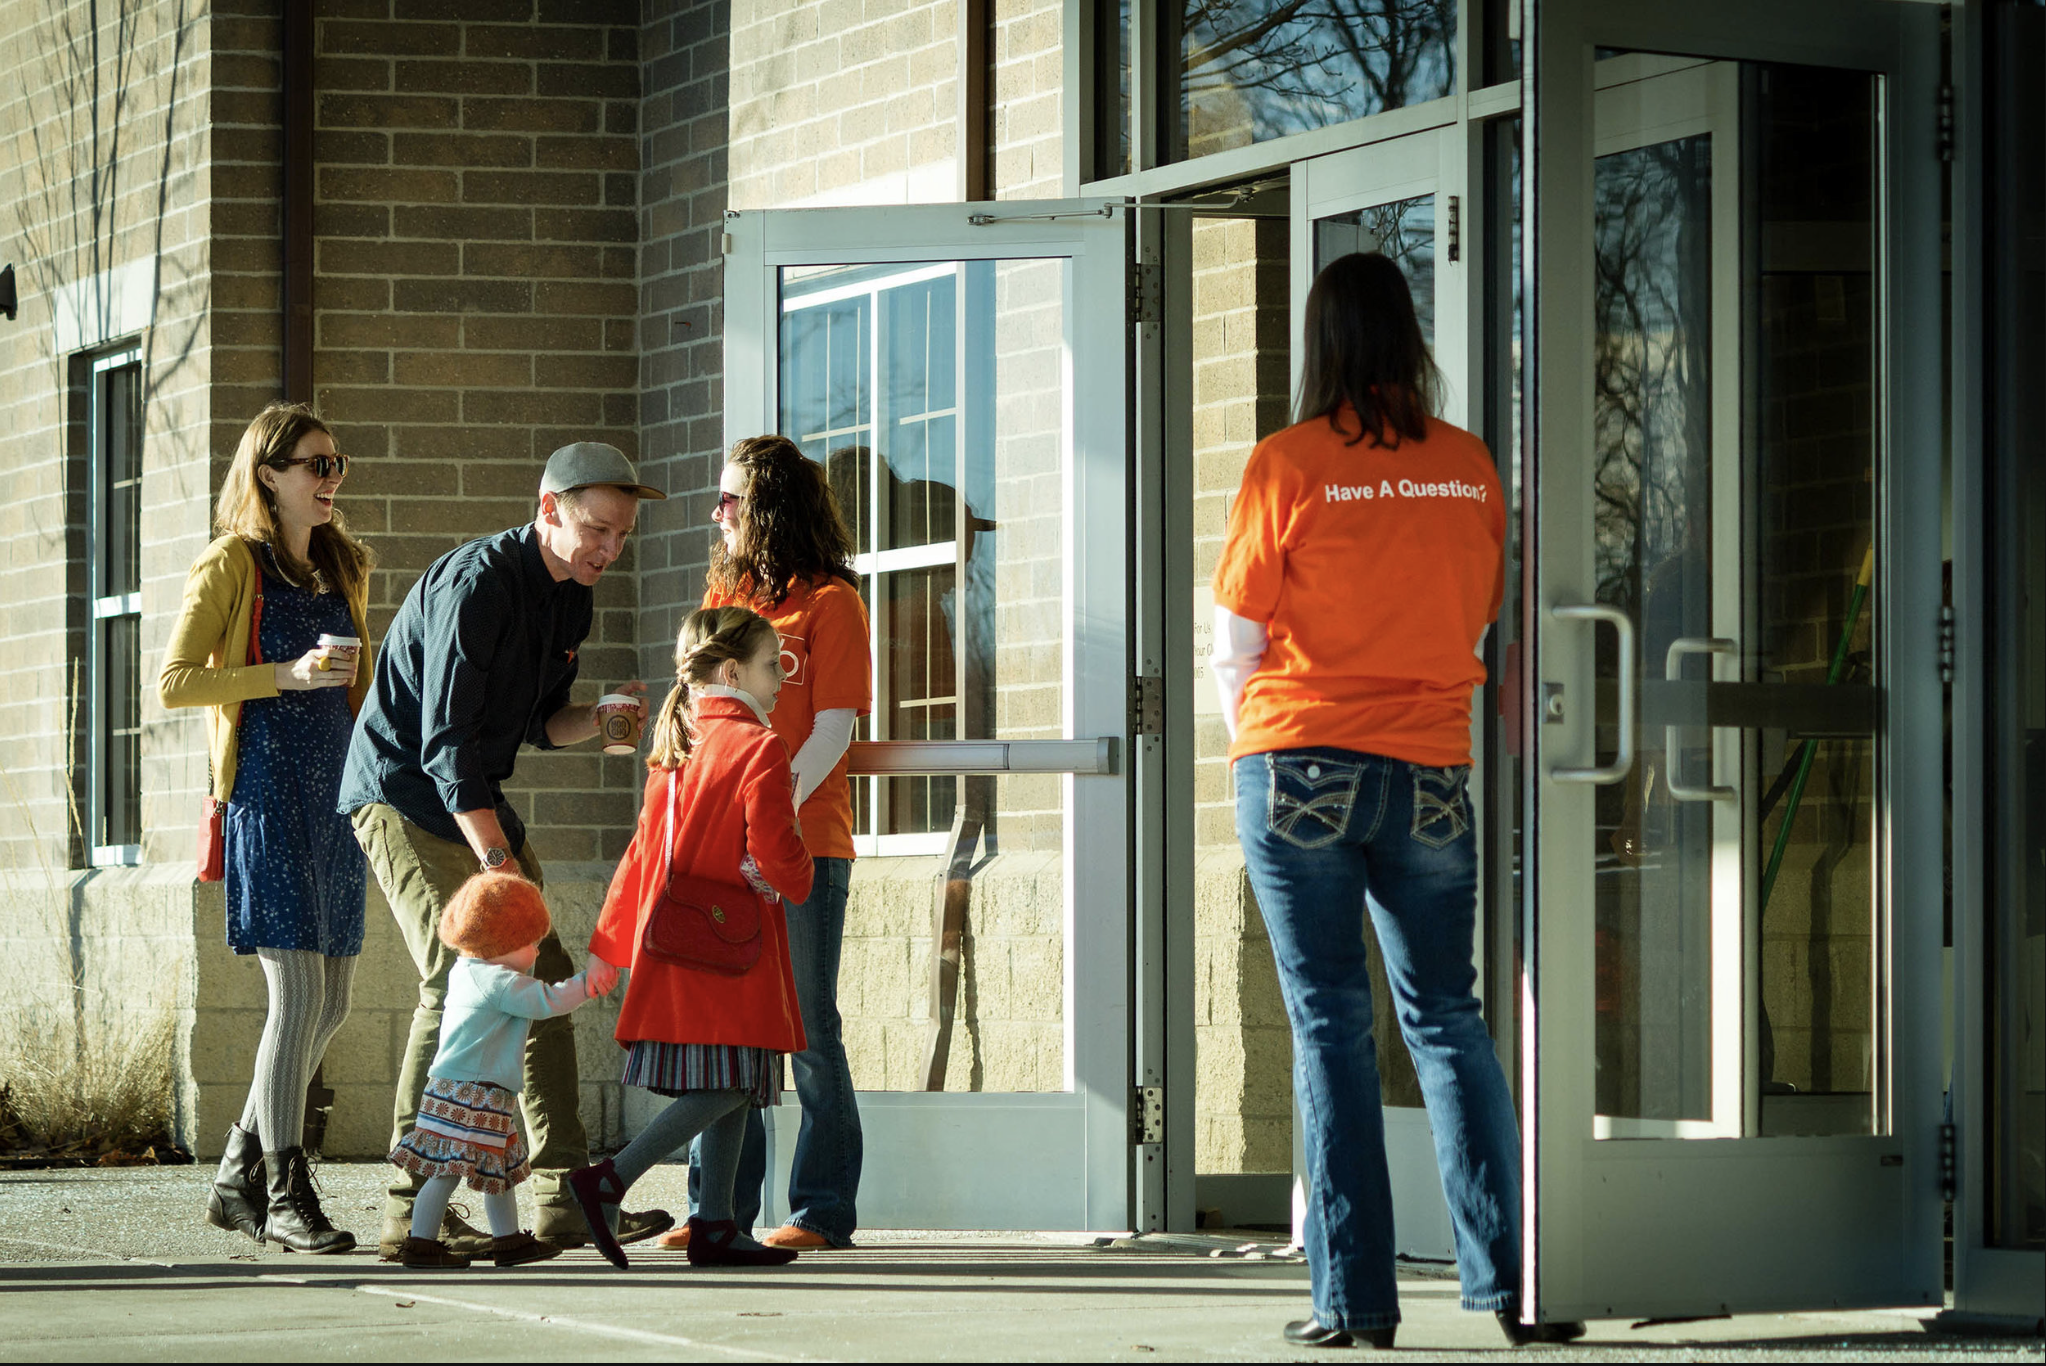 Join the Team - We believe that we are at our best when we are involved in ministry and serving others. Our hope is that every volunteer would be connected in serving in the area that is the most life-giving and best suited for them!